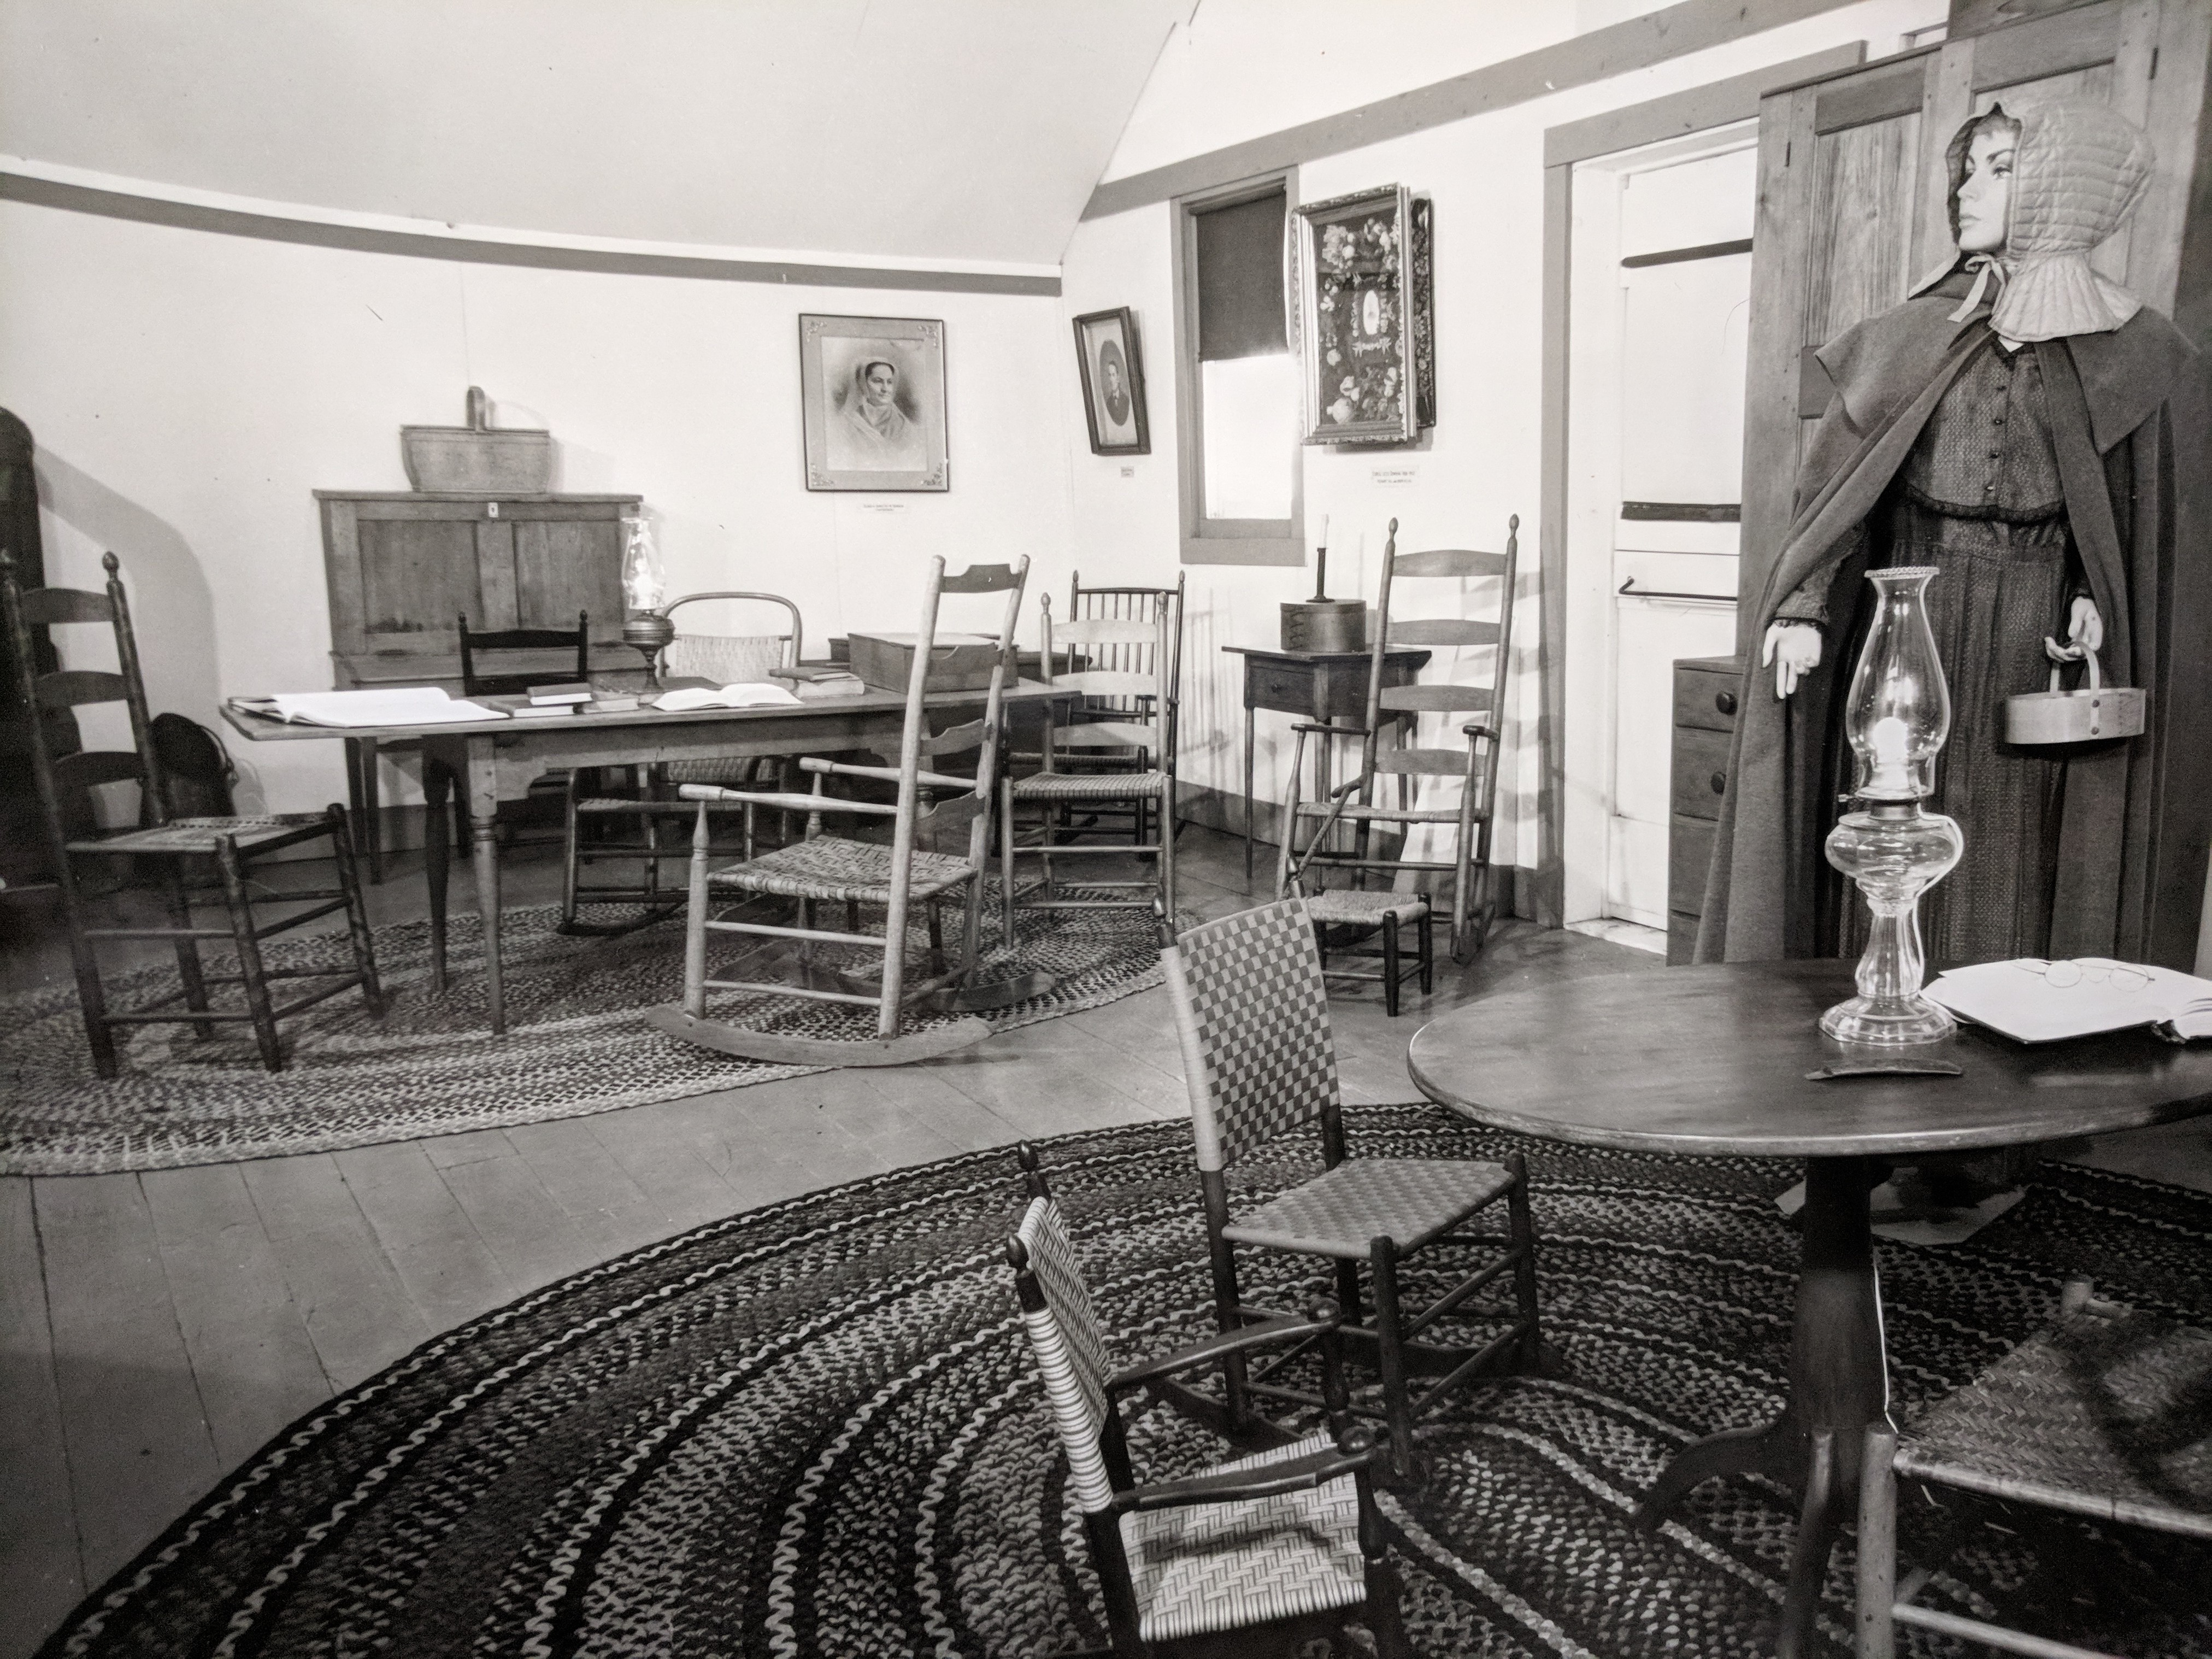 Sitting Room Gallery, 1976, Shaker Museum | Mount Lebanon.